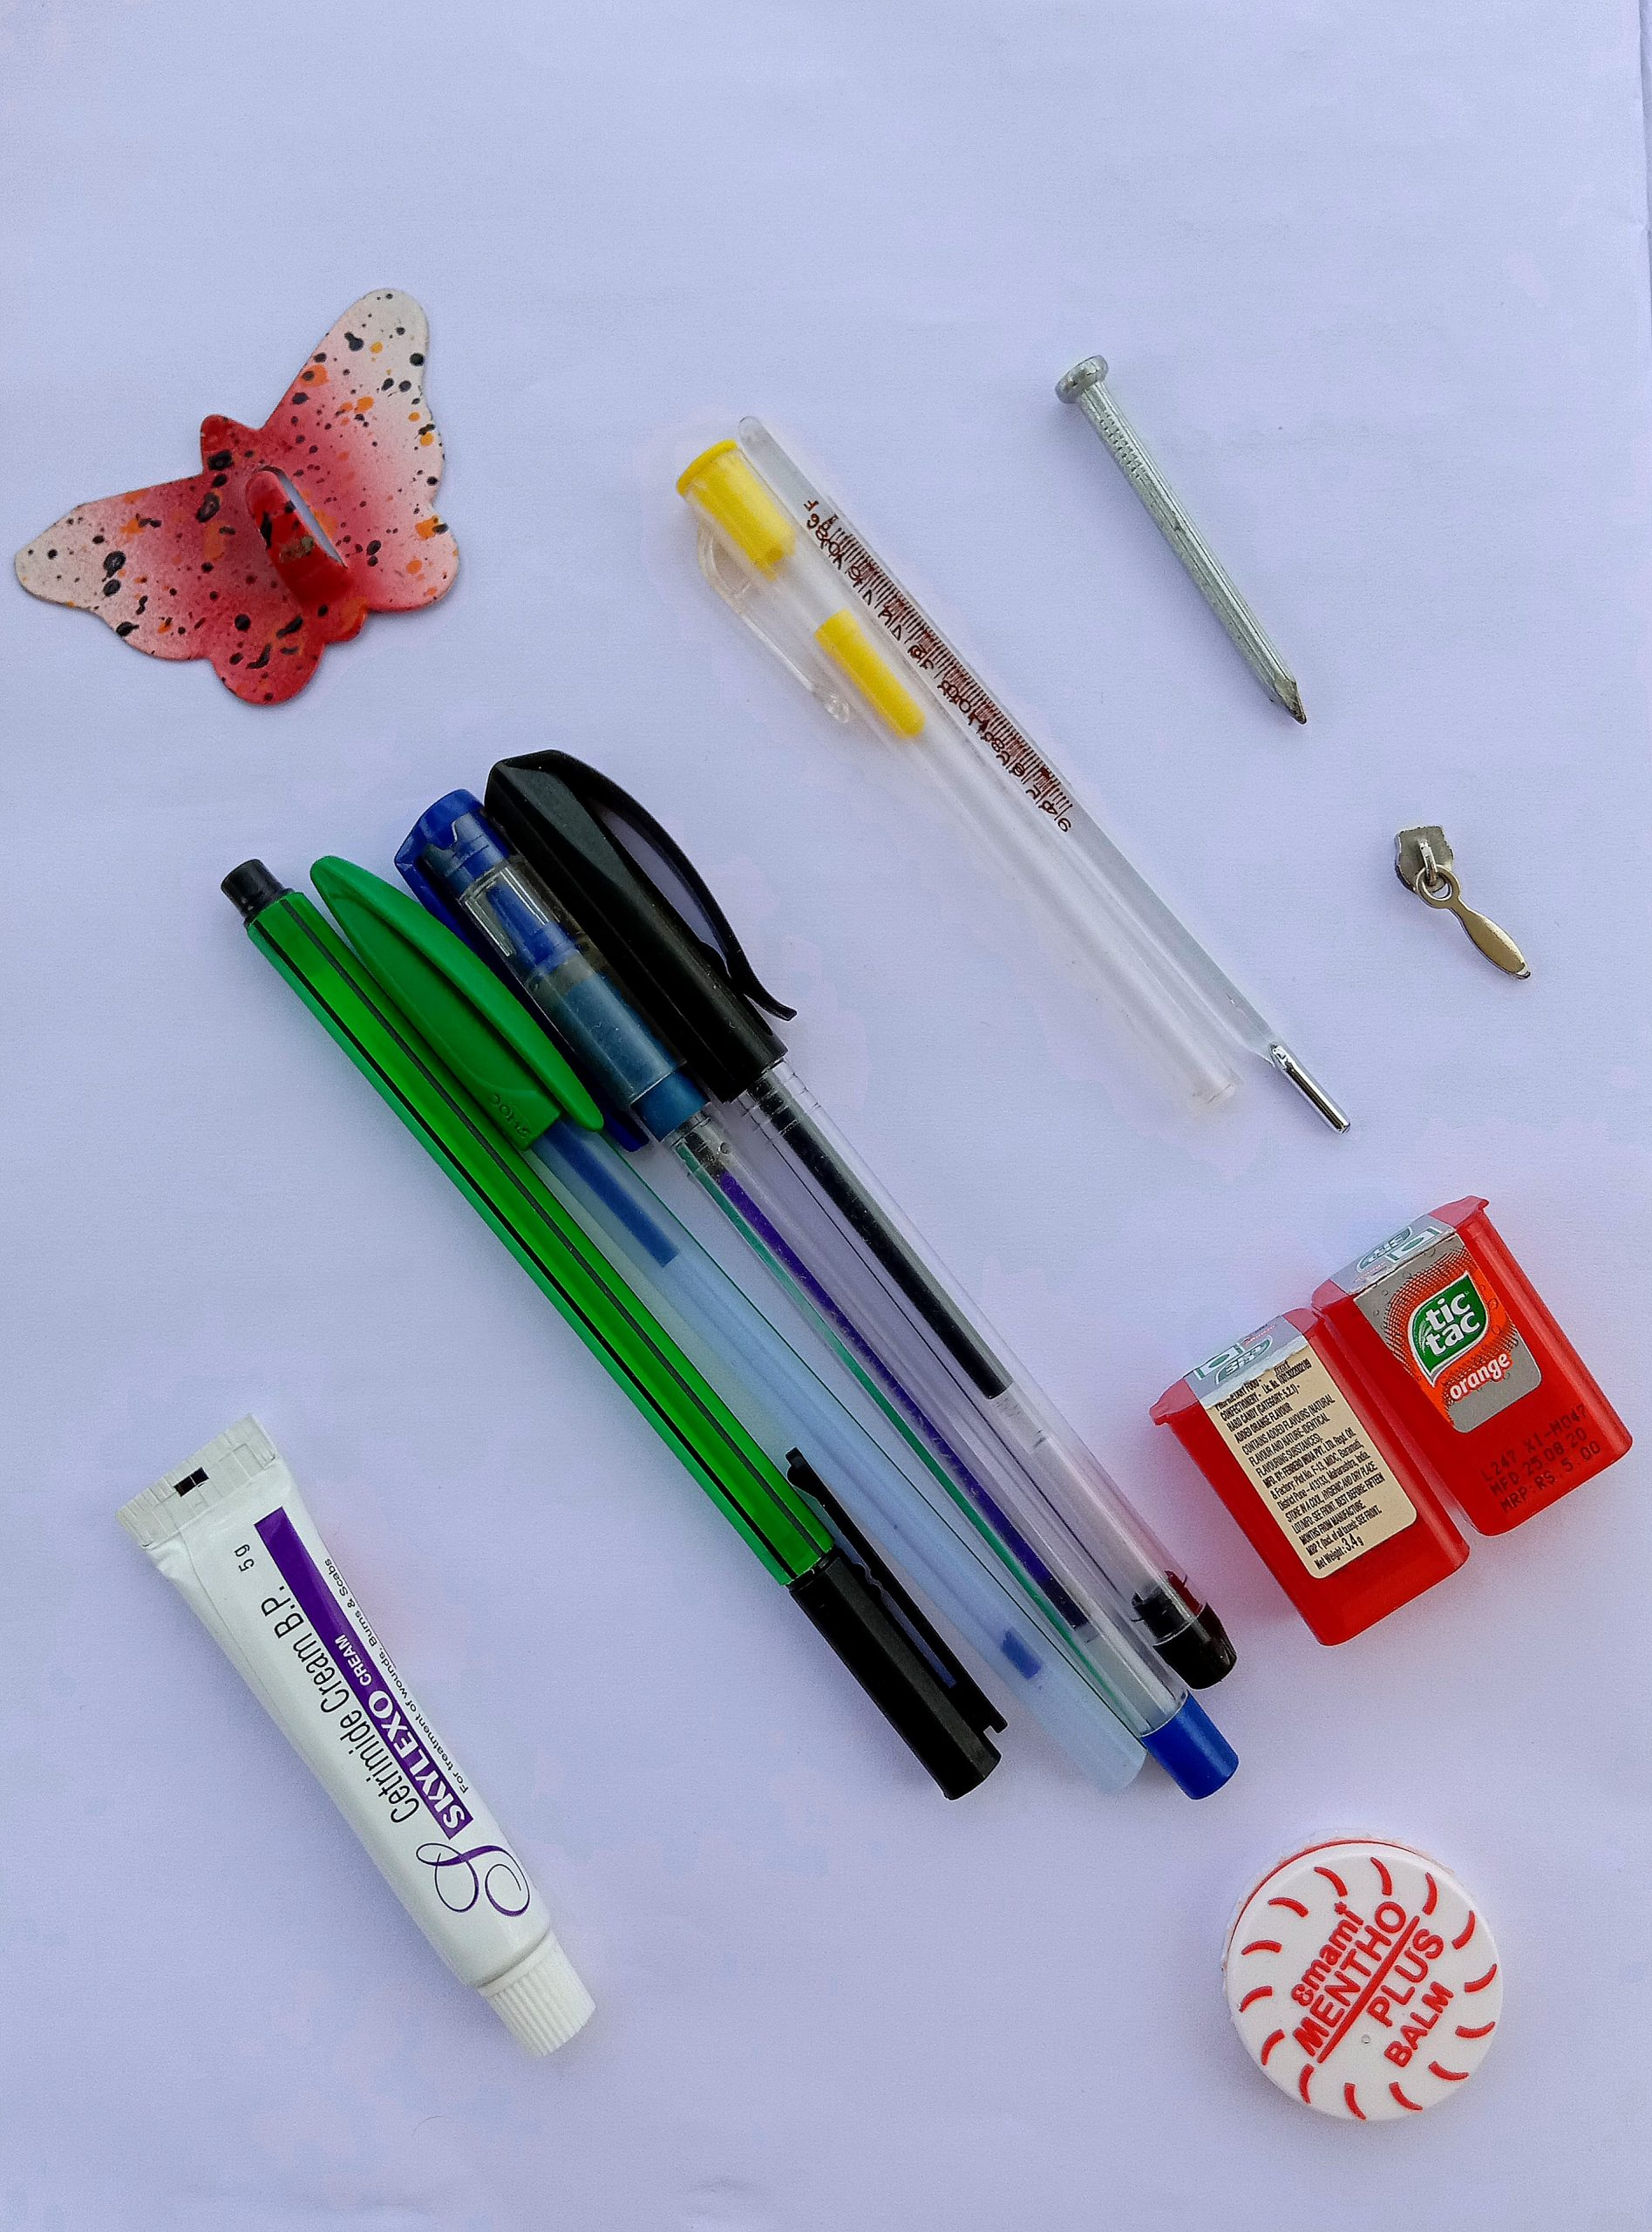 Pens and other items